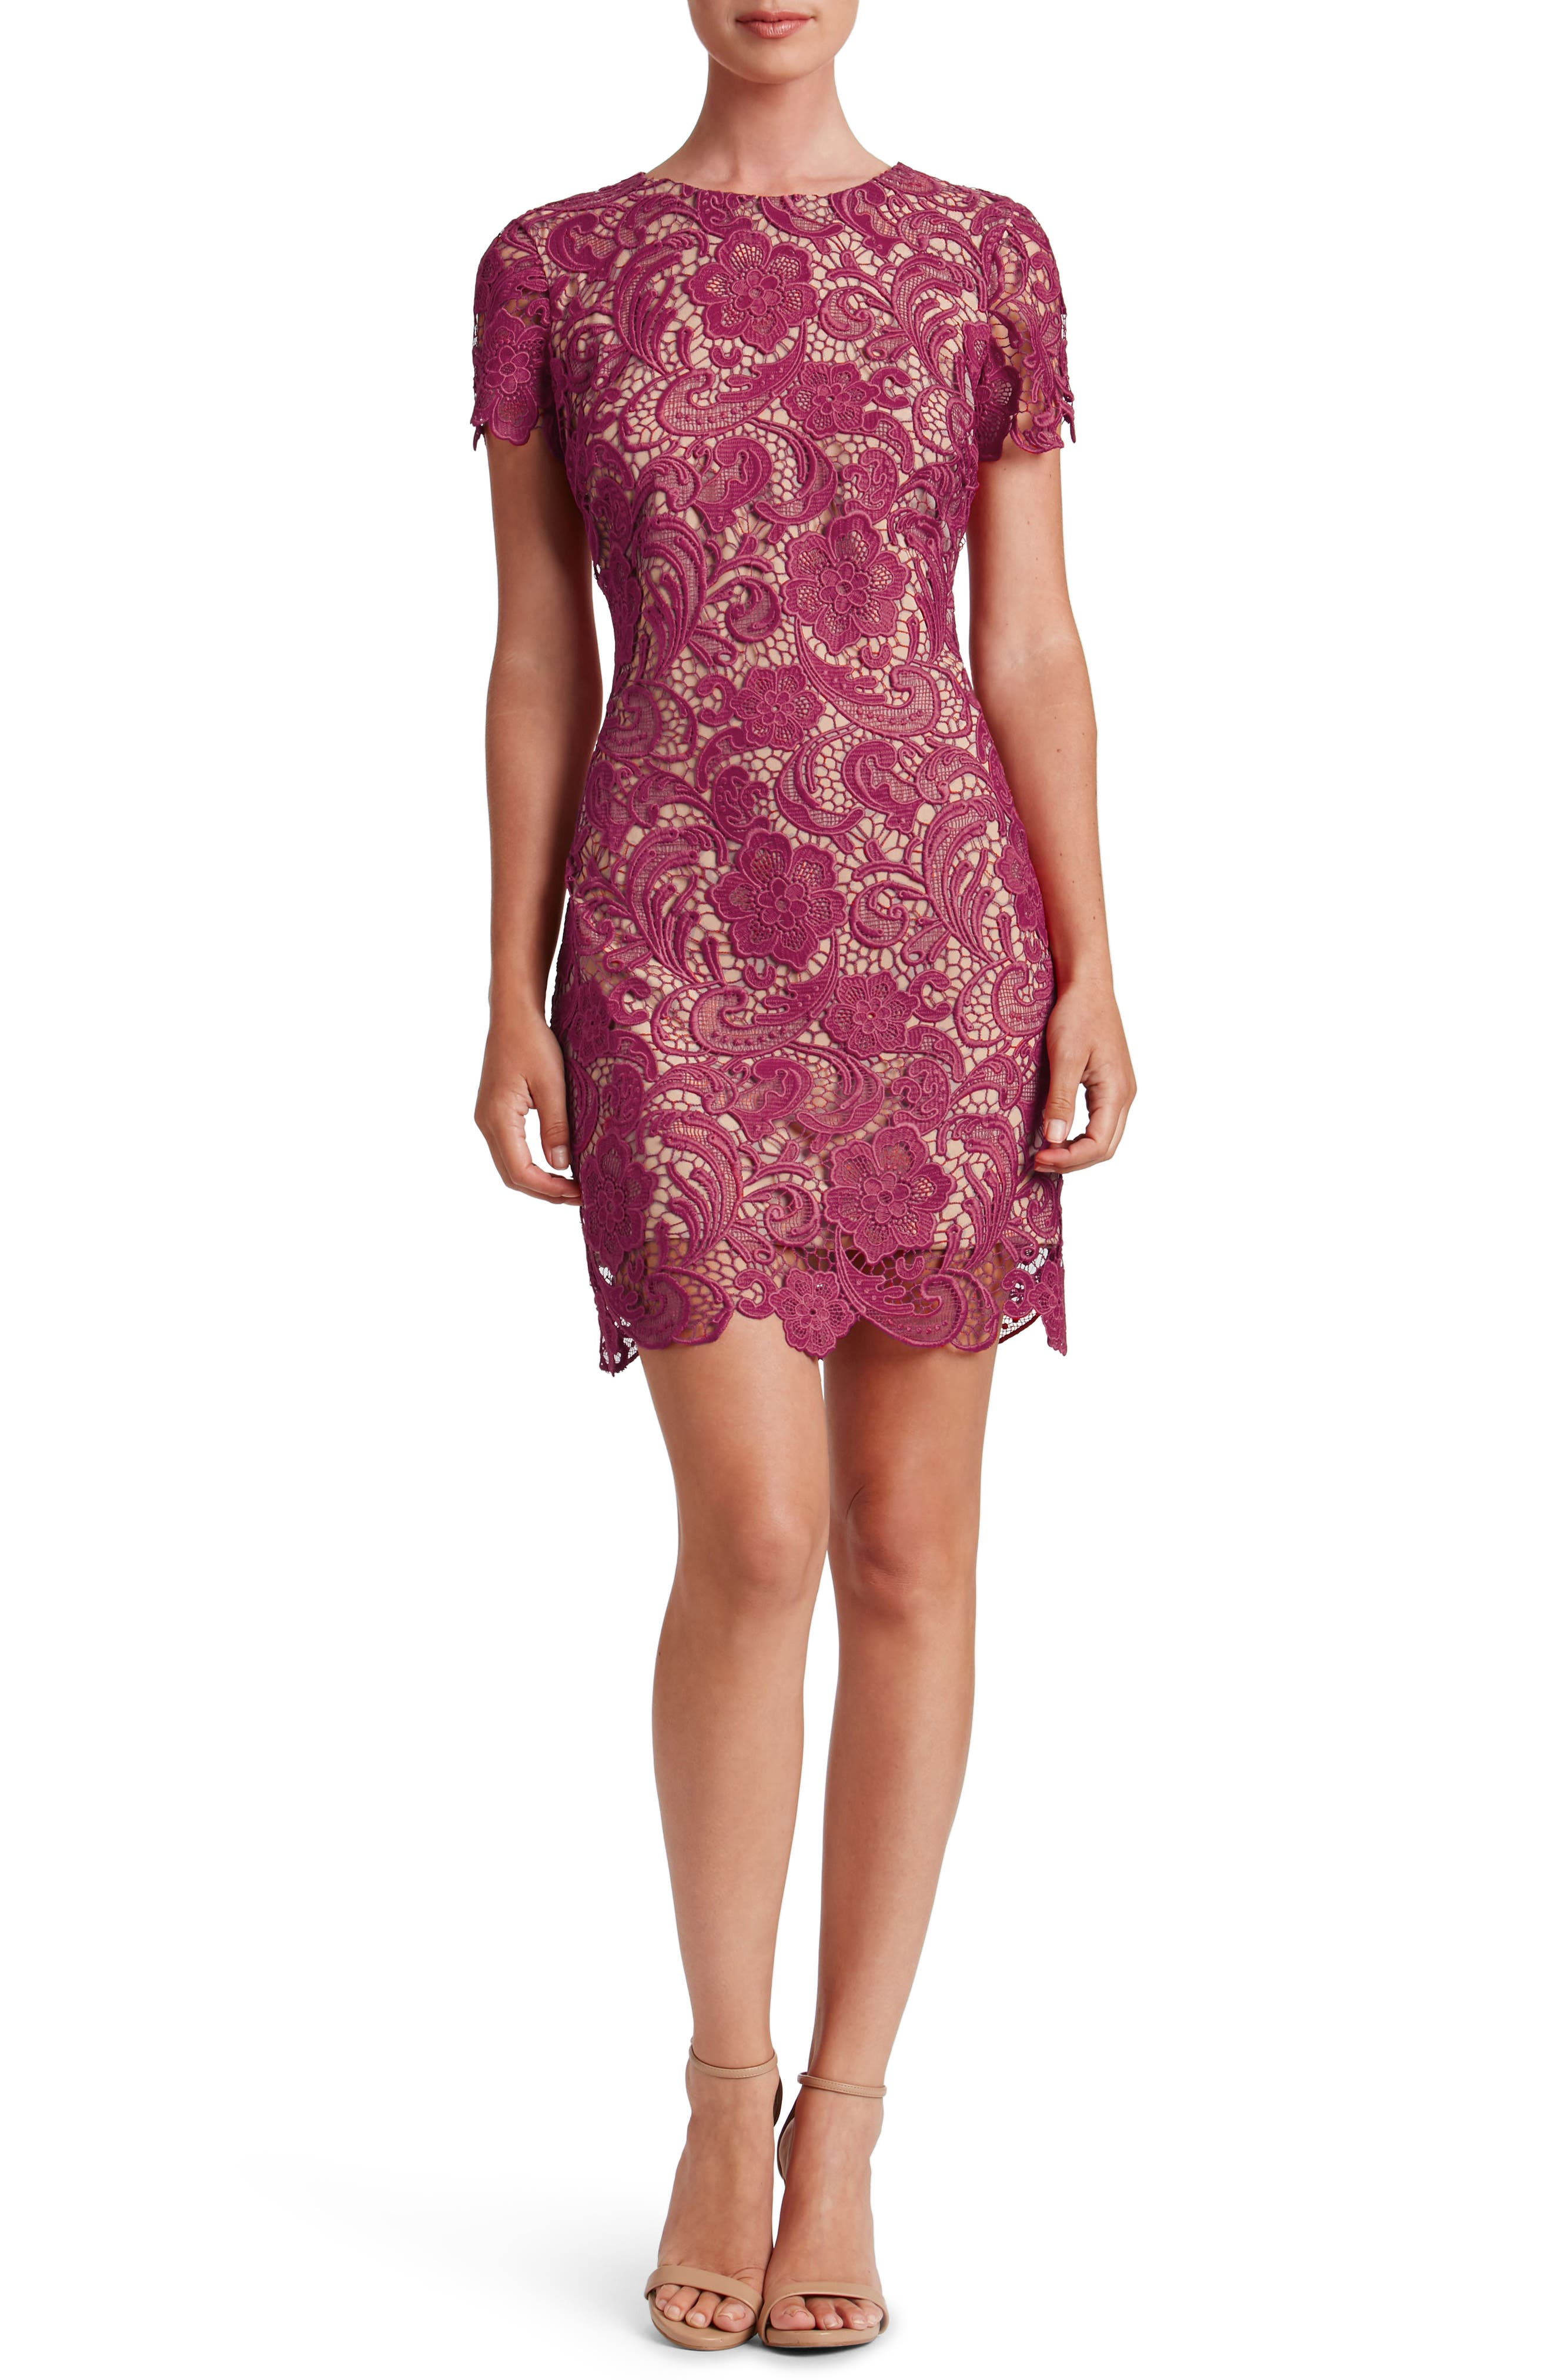 Anna Crochet Lace Sheath Dress,                         Main,                         color, Mulberry/ Nude